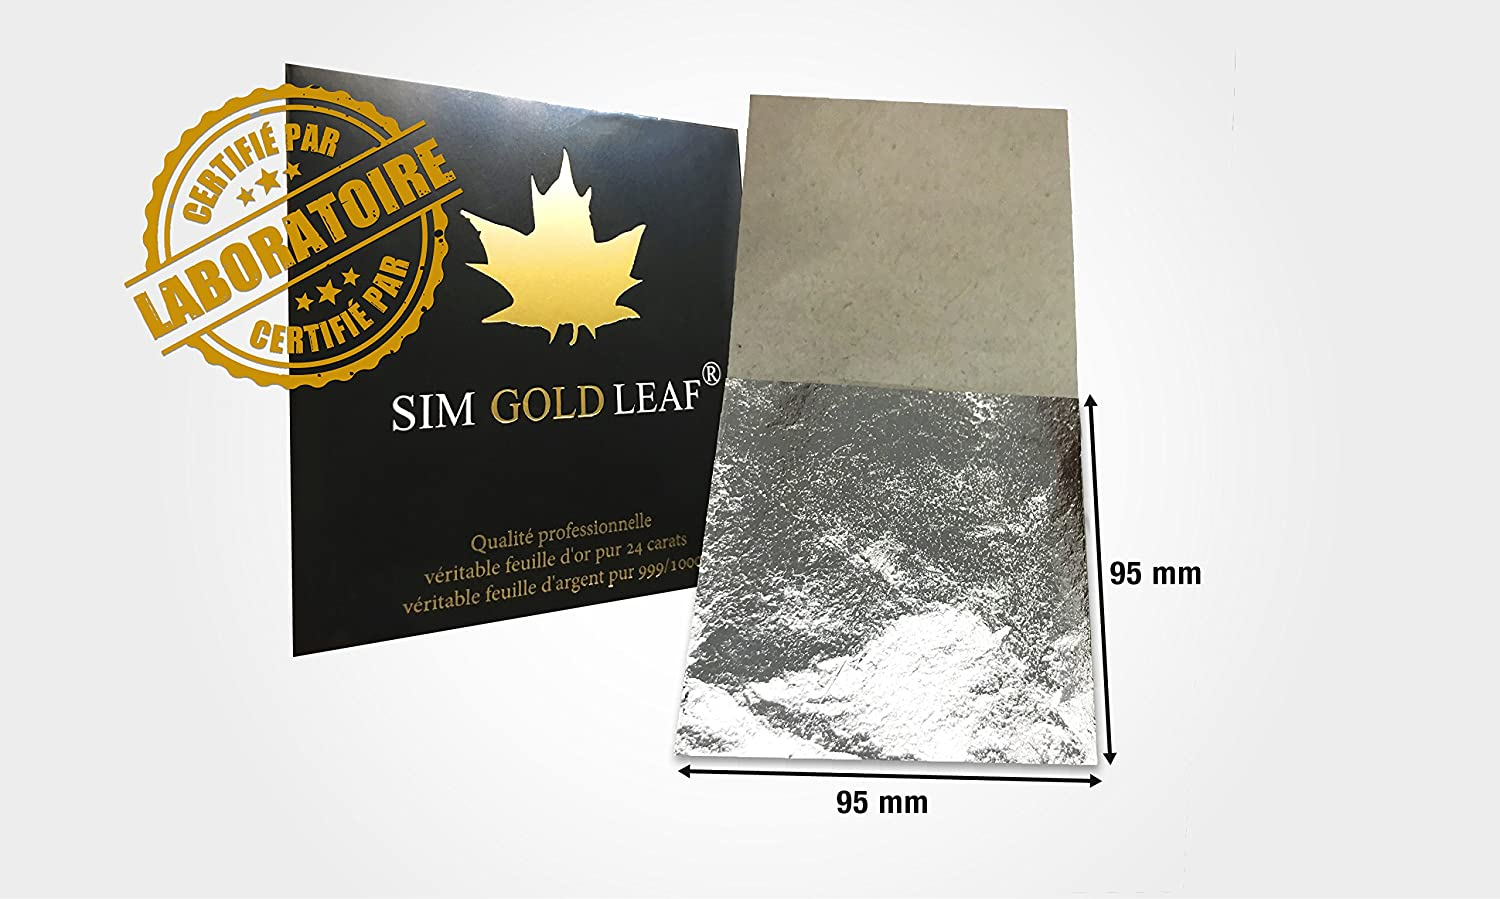 Transfer//Patent 3,75 NCH x 3,75 inches Genuine Silver Leaf 10 Sheets 9.5 cm by 9.5 cm